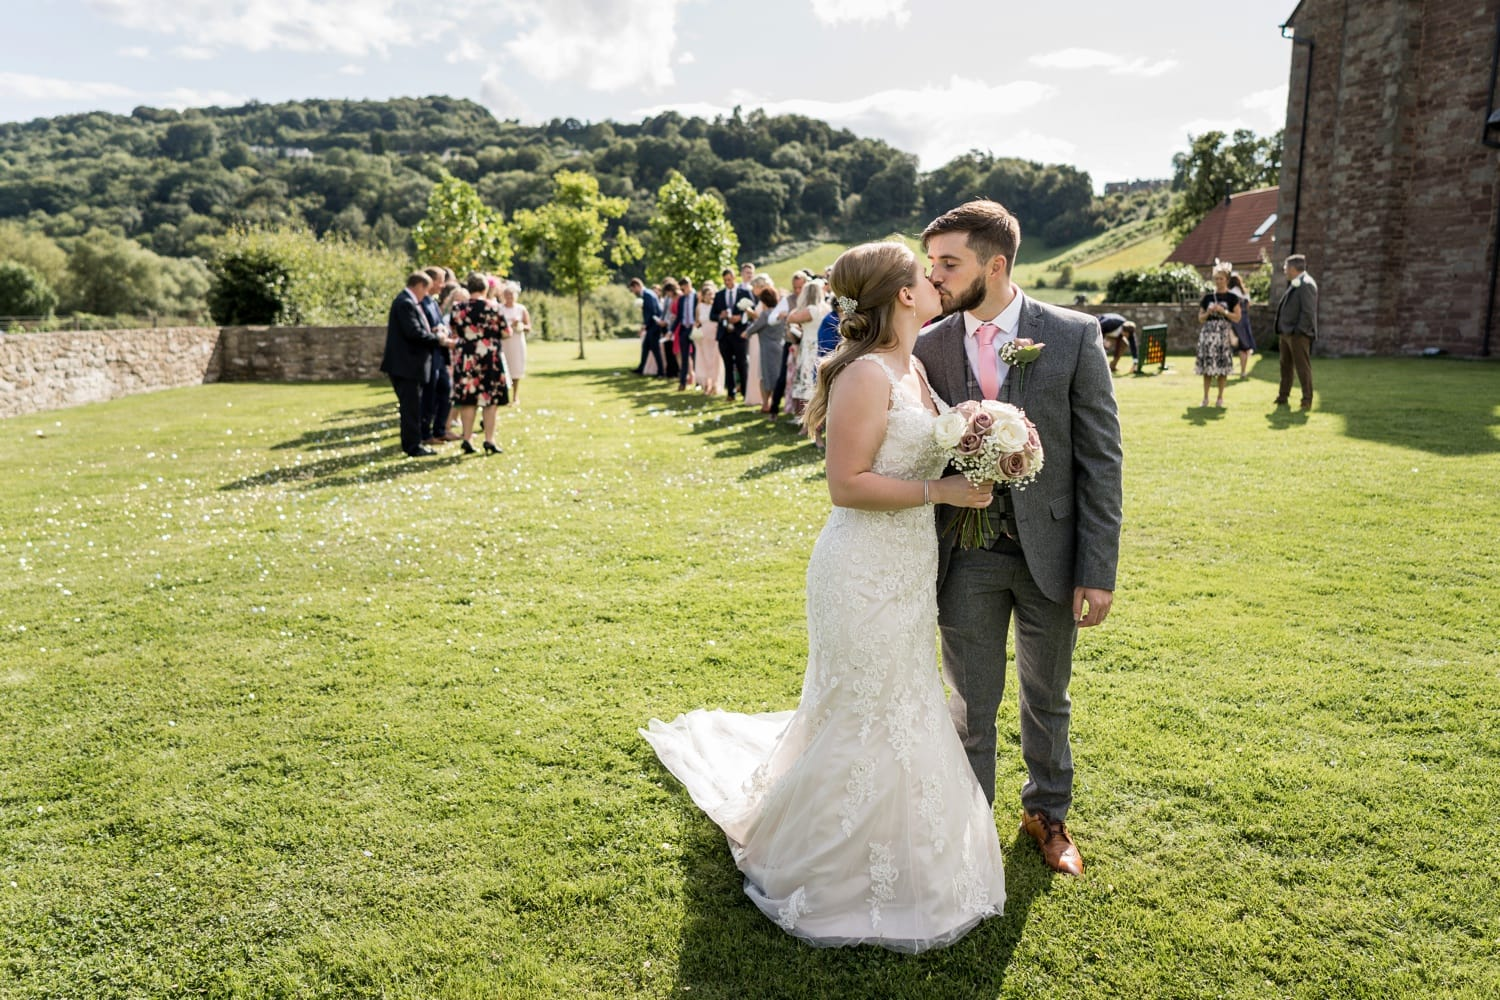 at Herefordshire wedding venue Flanesford Priory